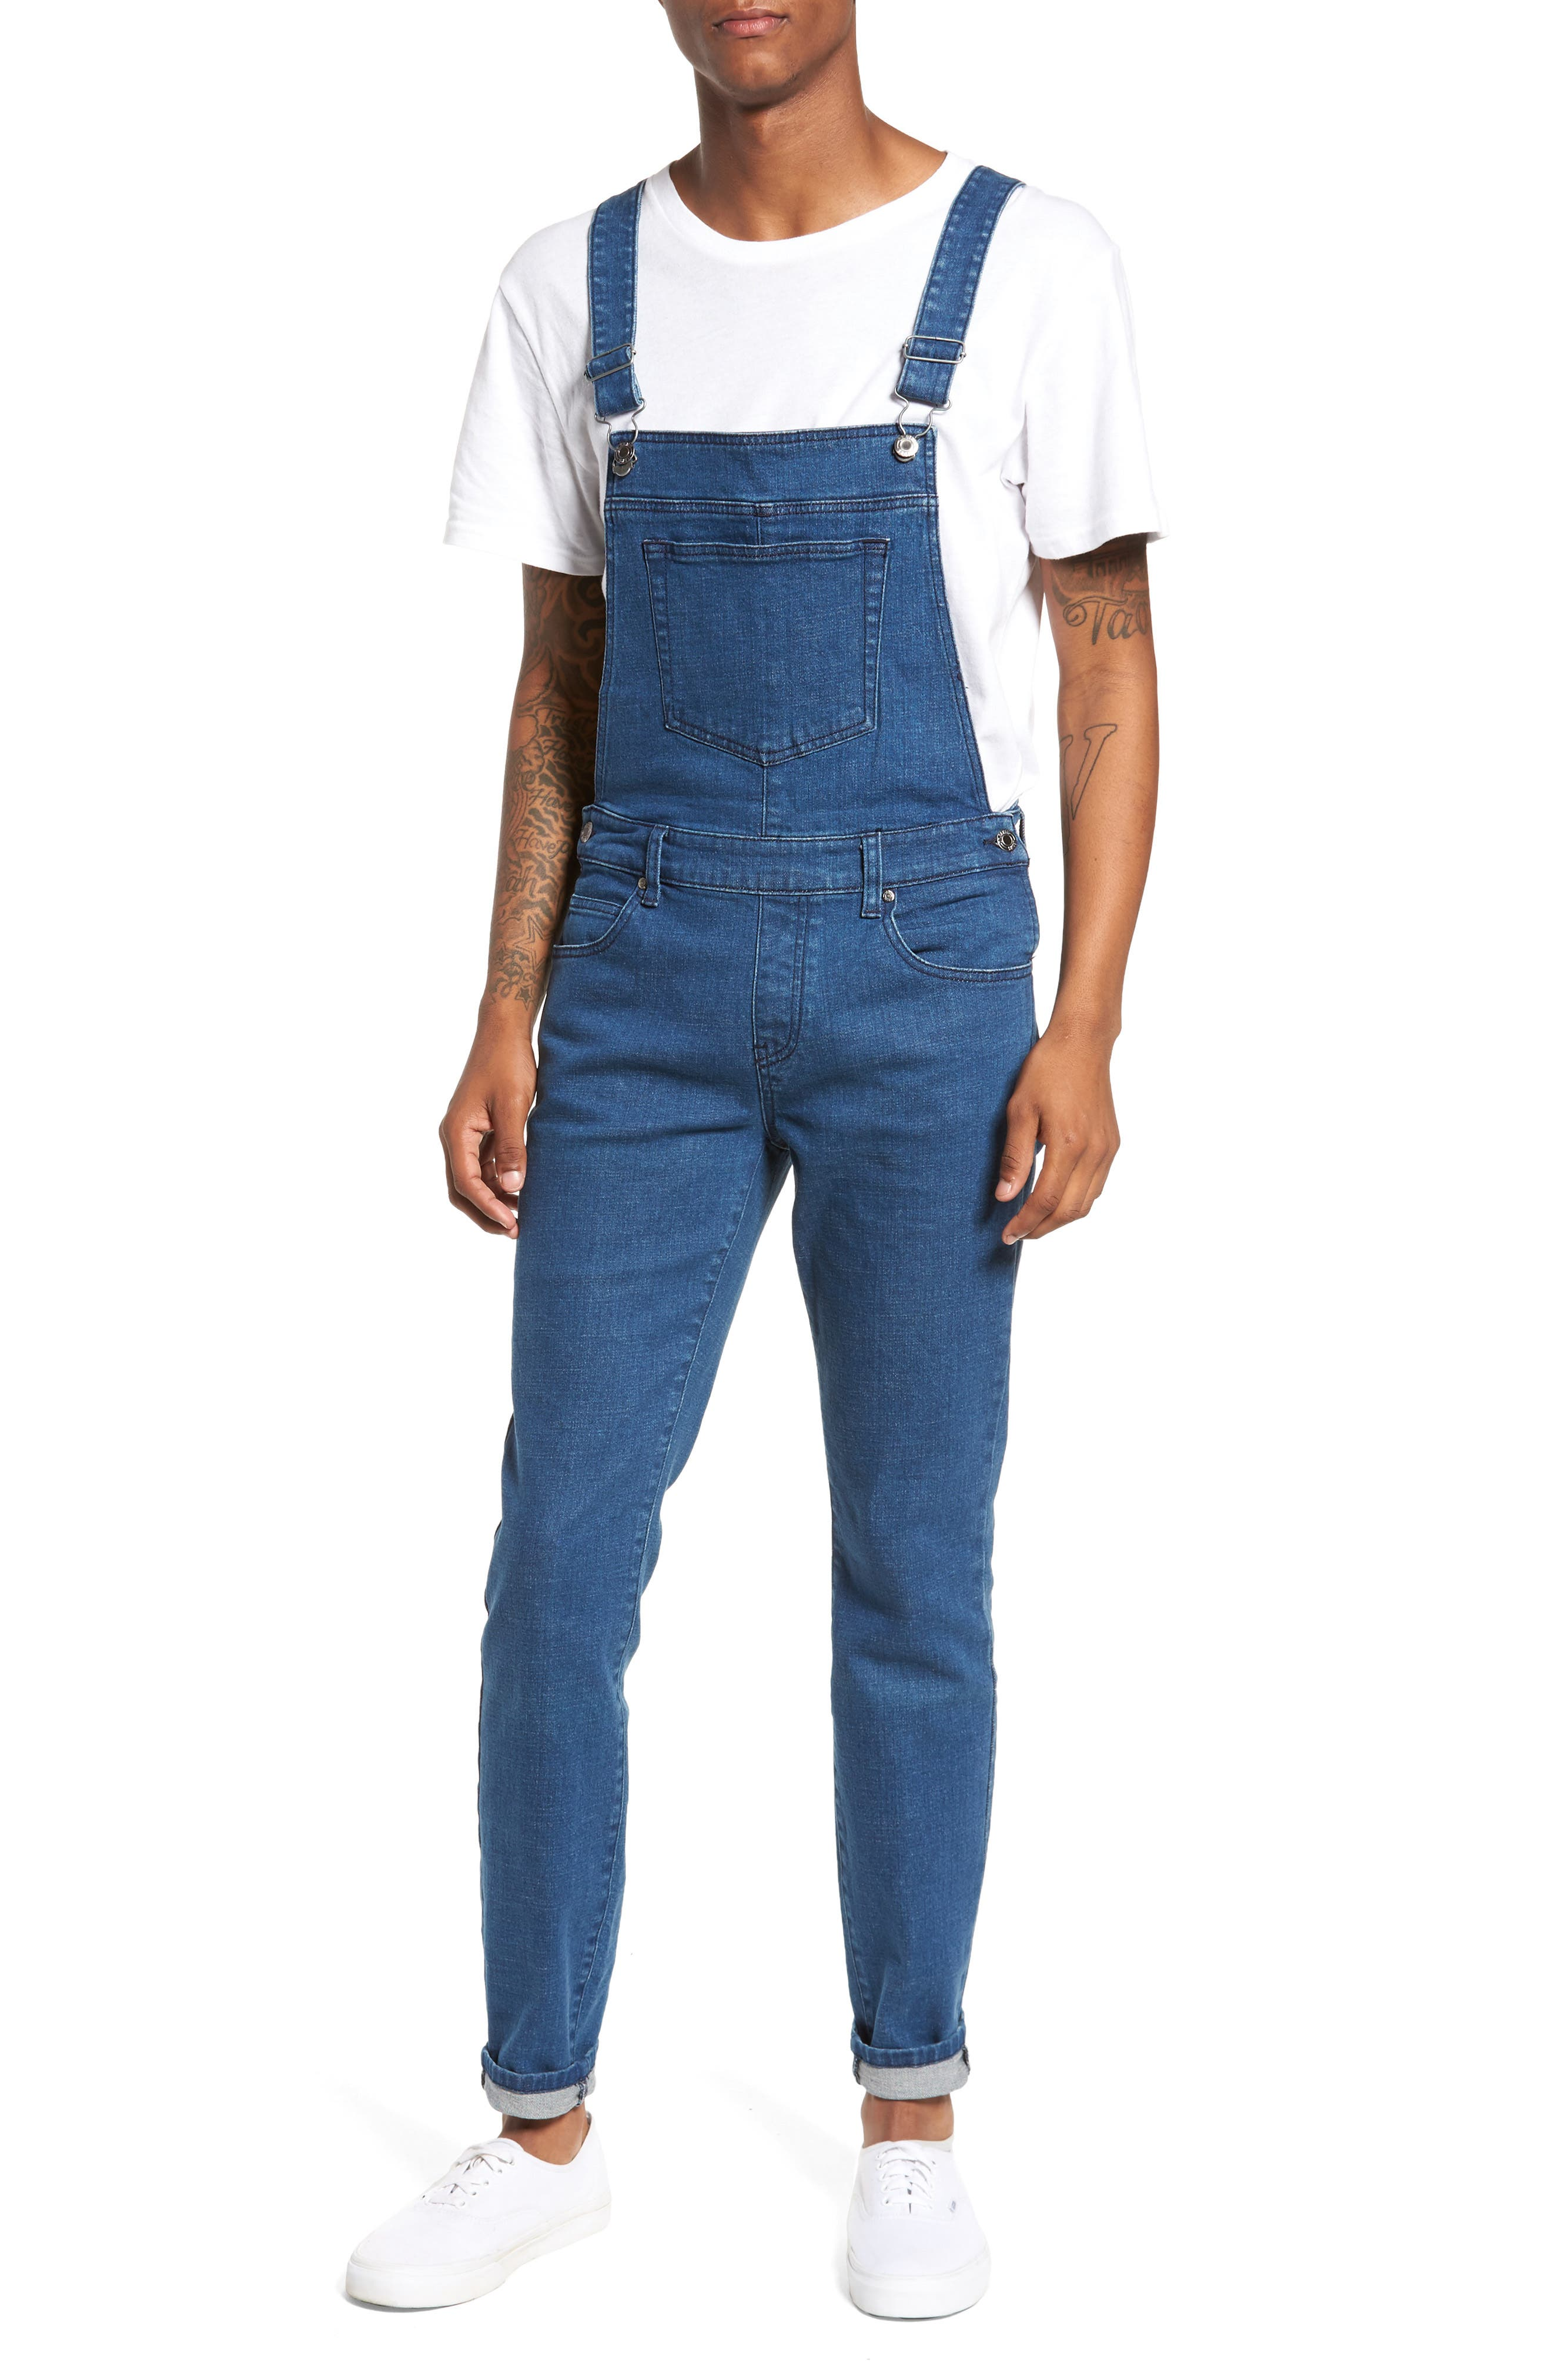 Main Image - Dr. Denim Supply Co. Ira Skinny Fit Overalls (90s Mid Stone)